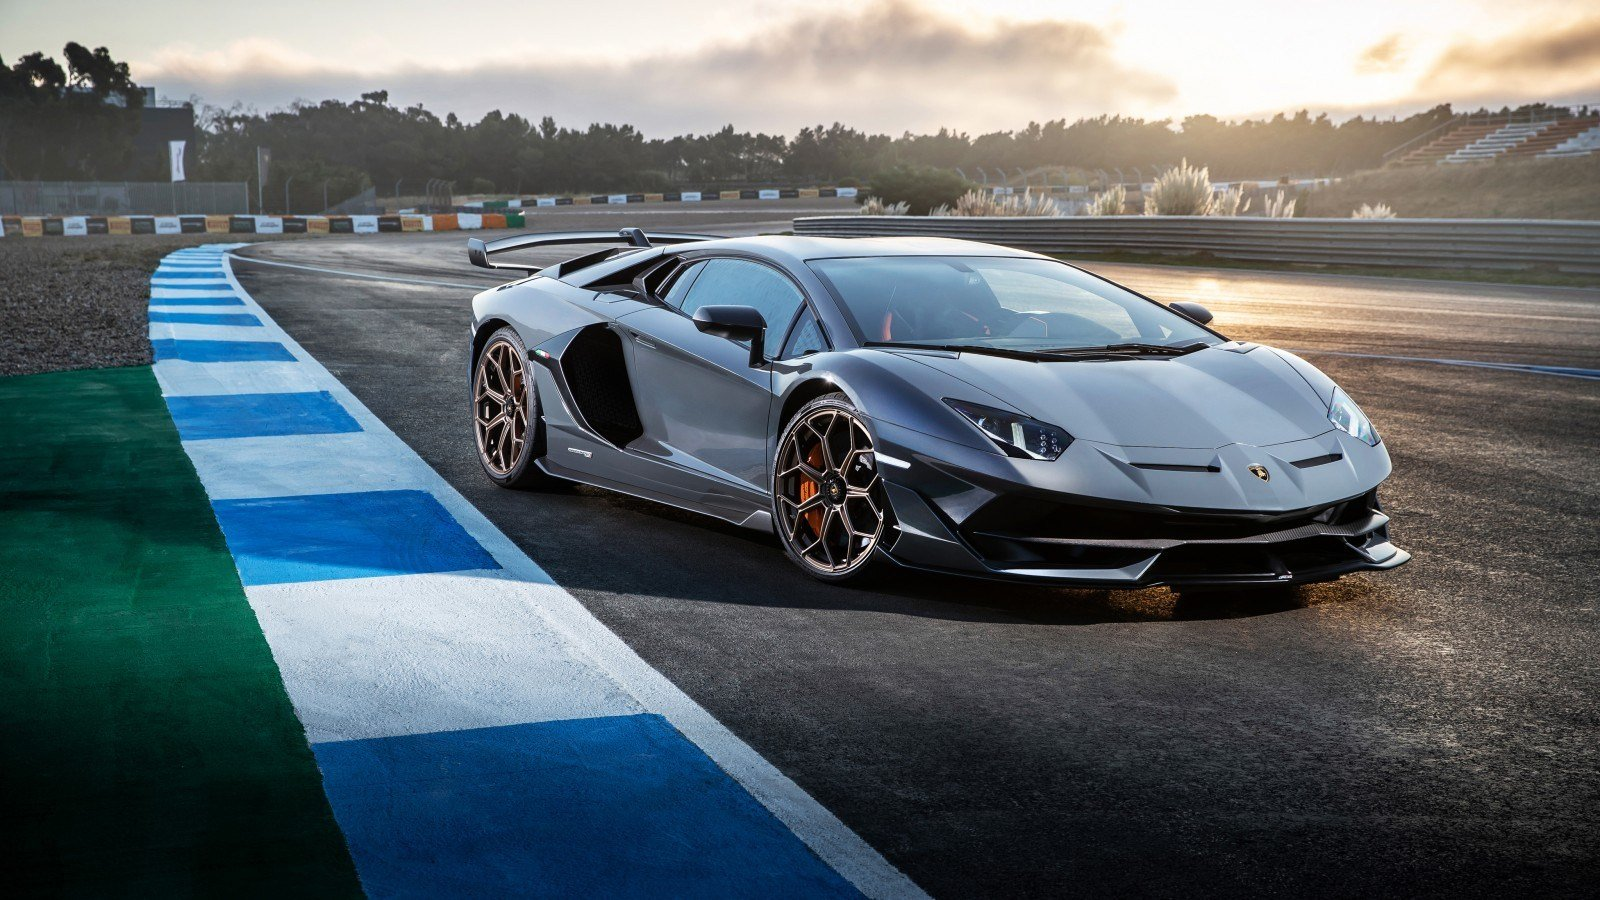 New Lamborghini Aventador Svj 2019 4K Wallpapers Hd On This Month